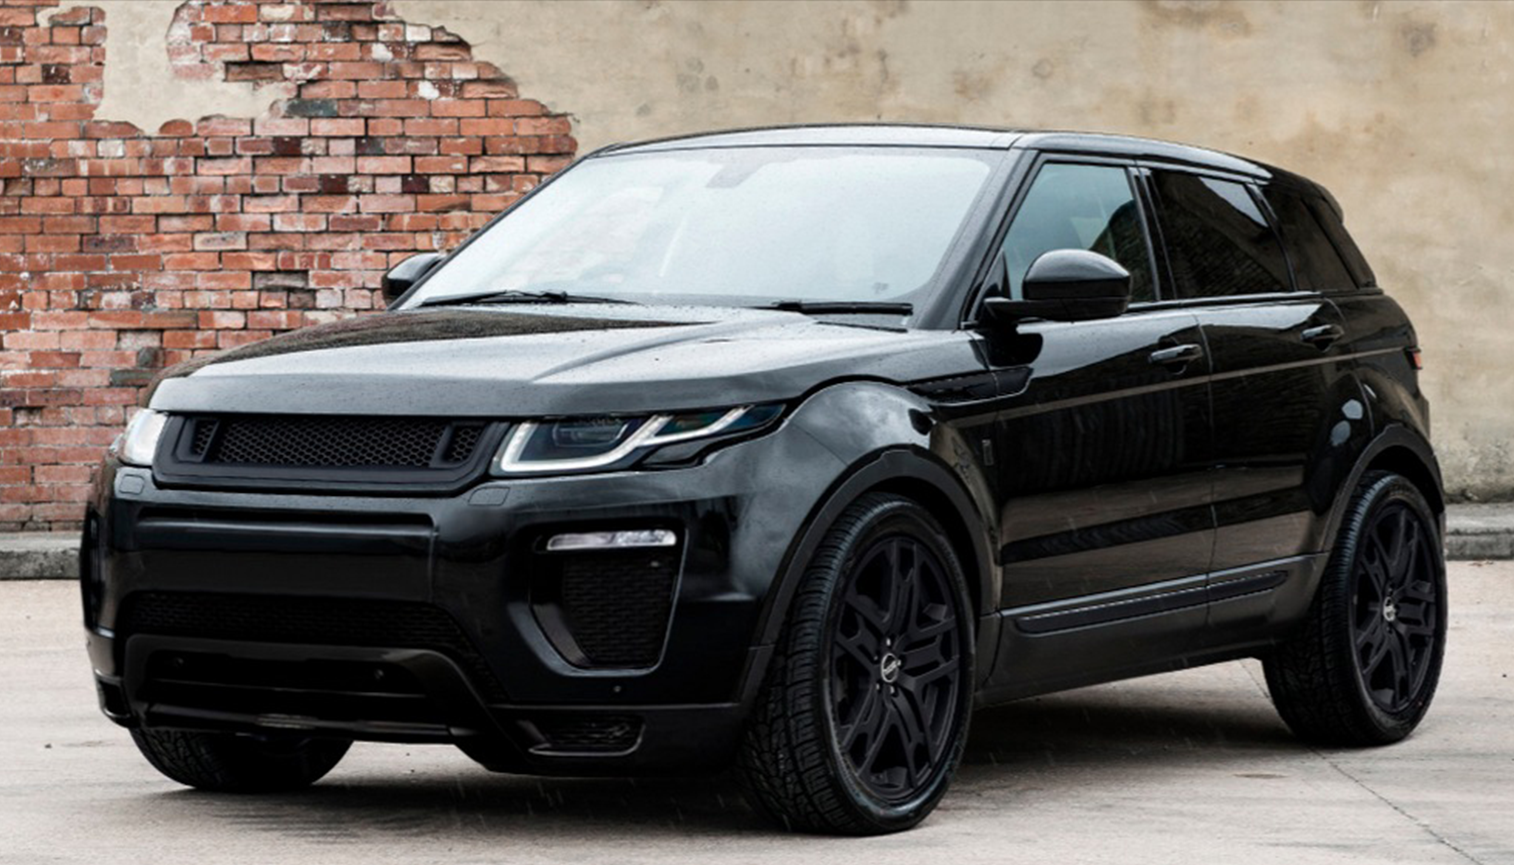 Rent a car Range Rover Evoque 2,0 TDI DYNAMIC AT NEW MODEL - Rai ... 50ca6e8a3c